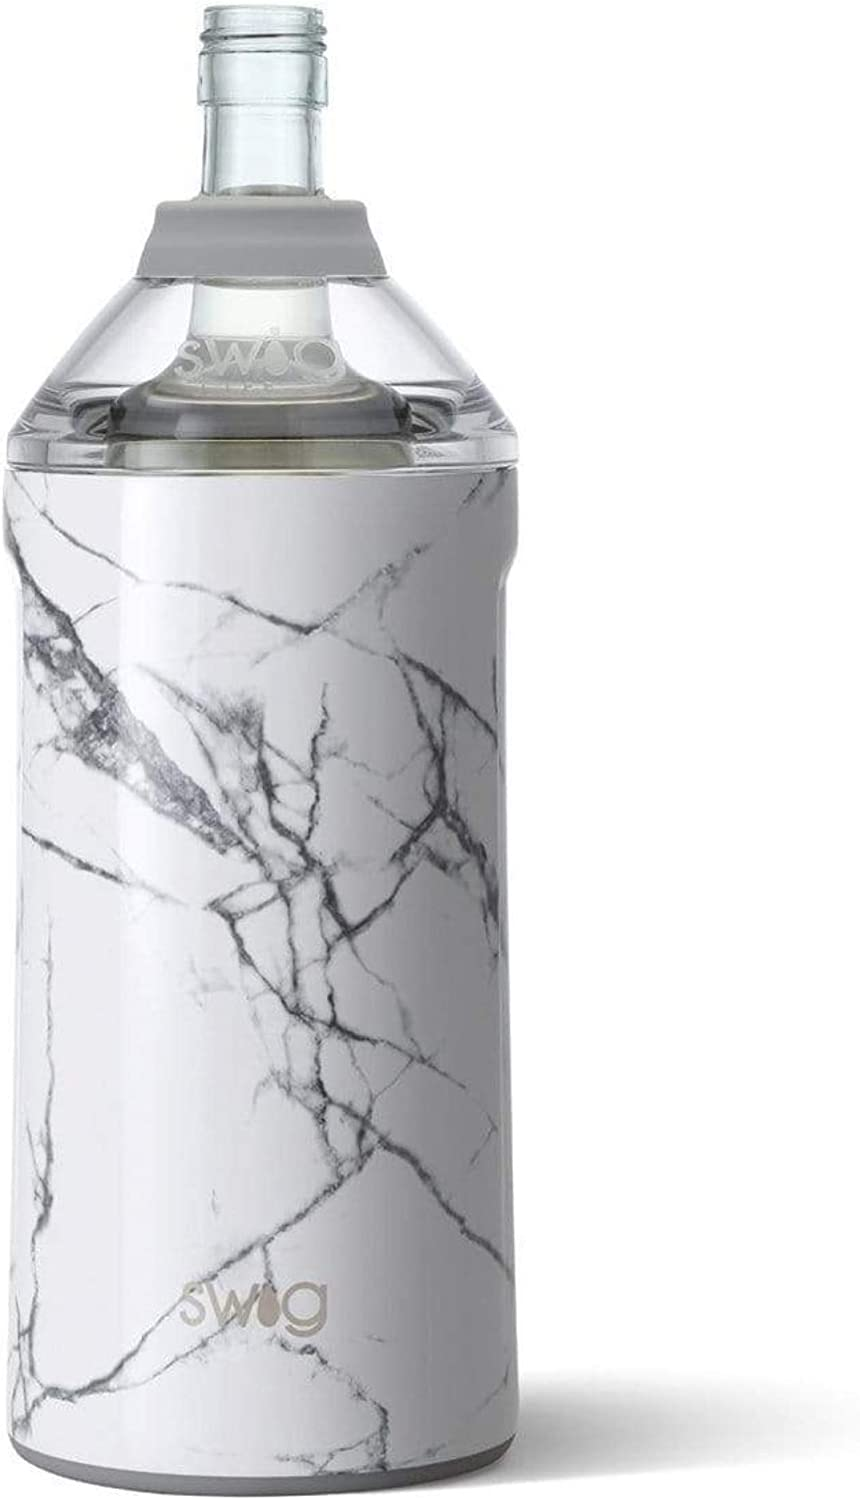 Swig Life Triple Insulated Wine Bottle Cooler, Dishwasher Safe, Double Walled, Stainless Steel Portable Champagne and Wine Chiller in our Marble Slab Pattern (Multiple Patterns Available)